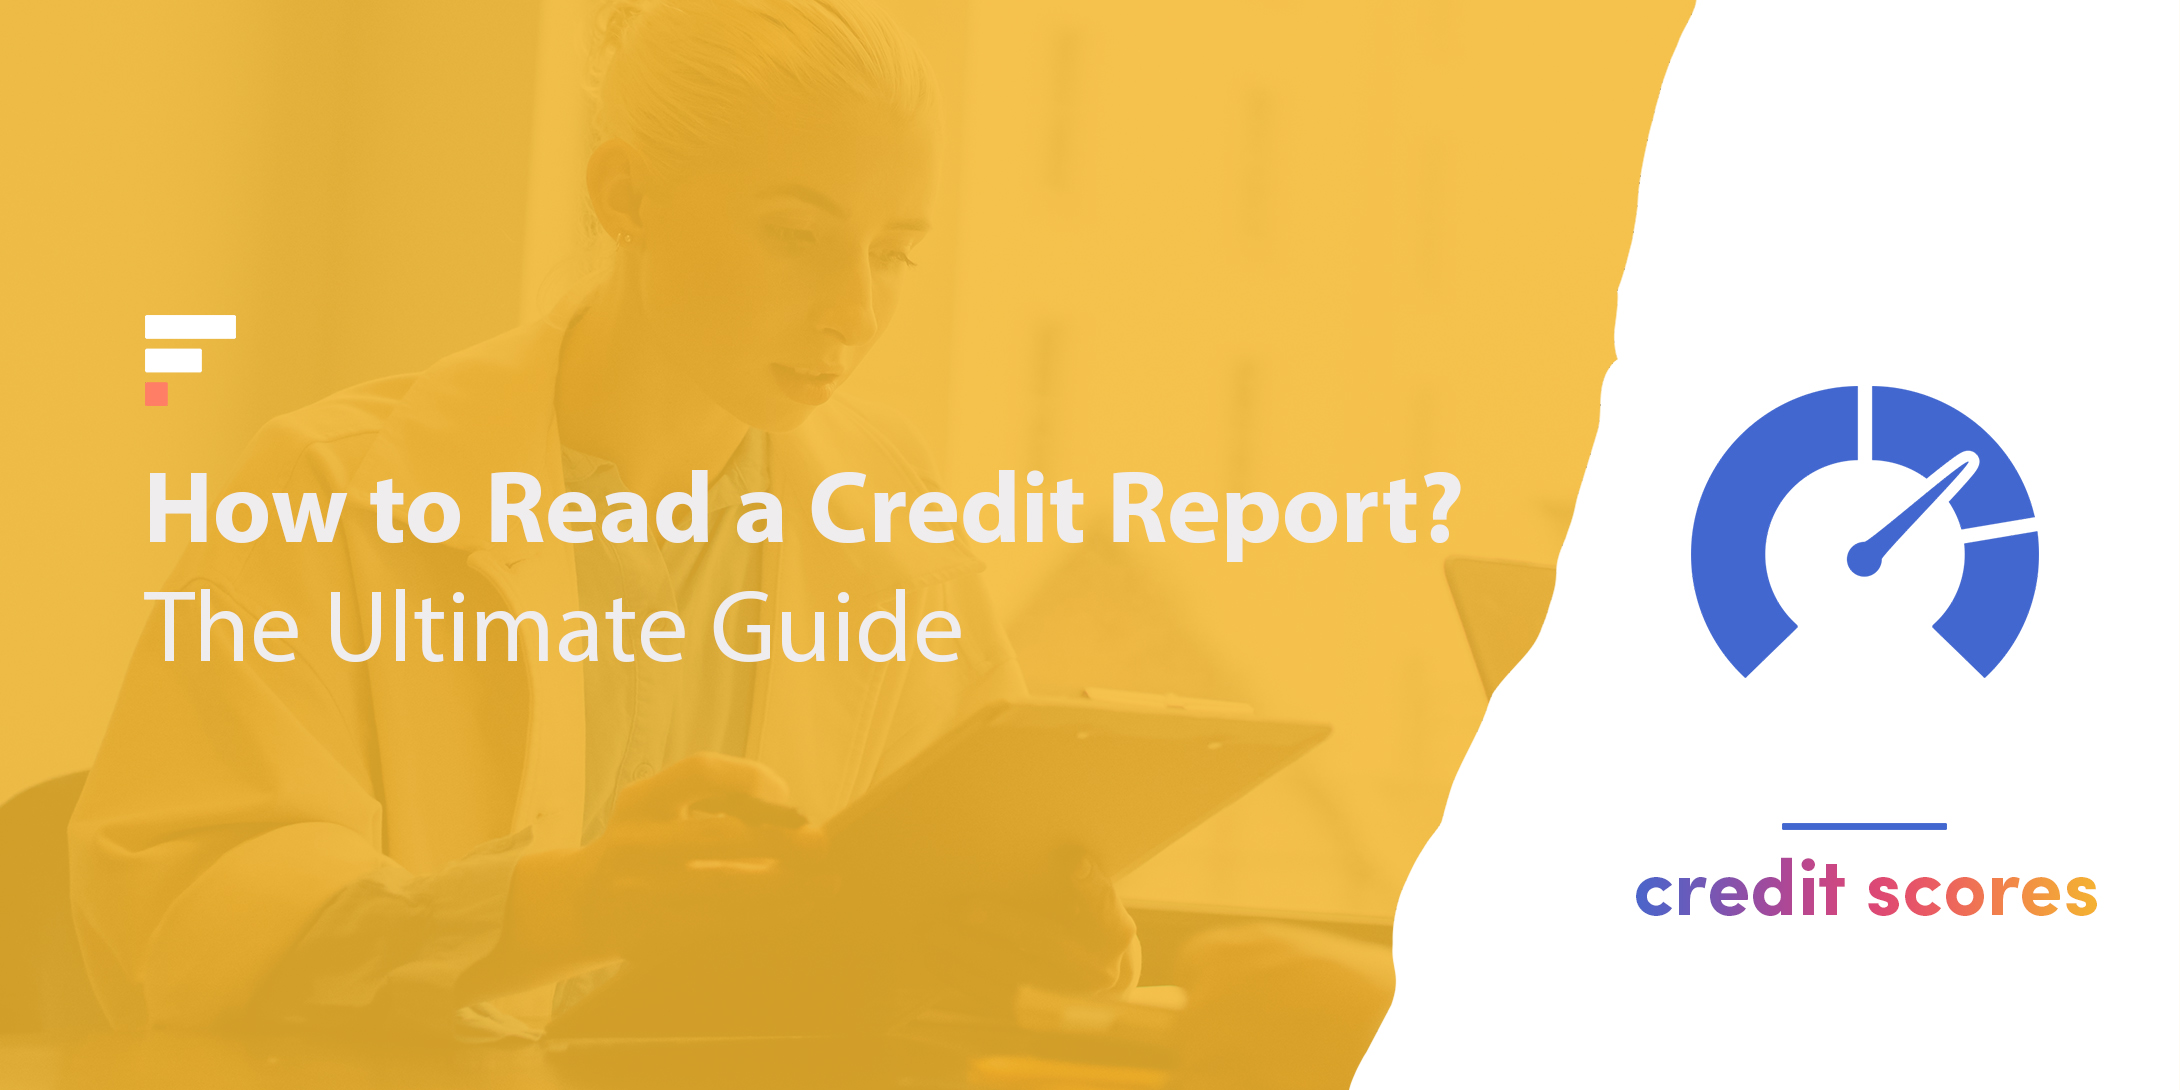 How to Read a Credit Report: The Ultimate Guide